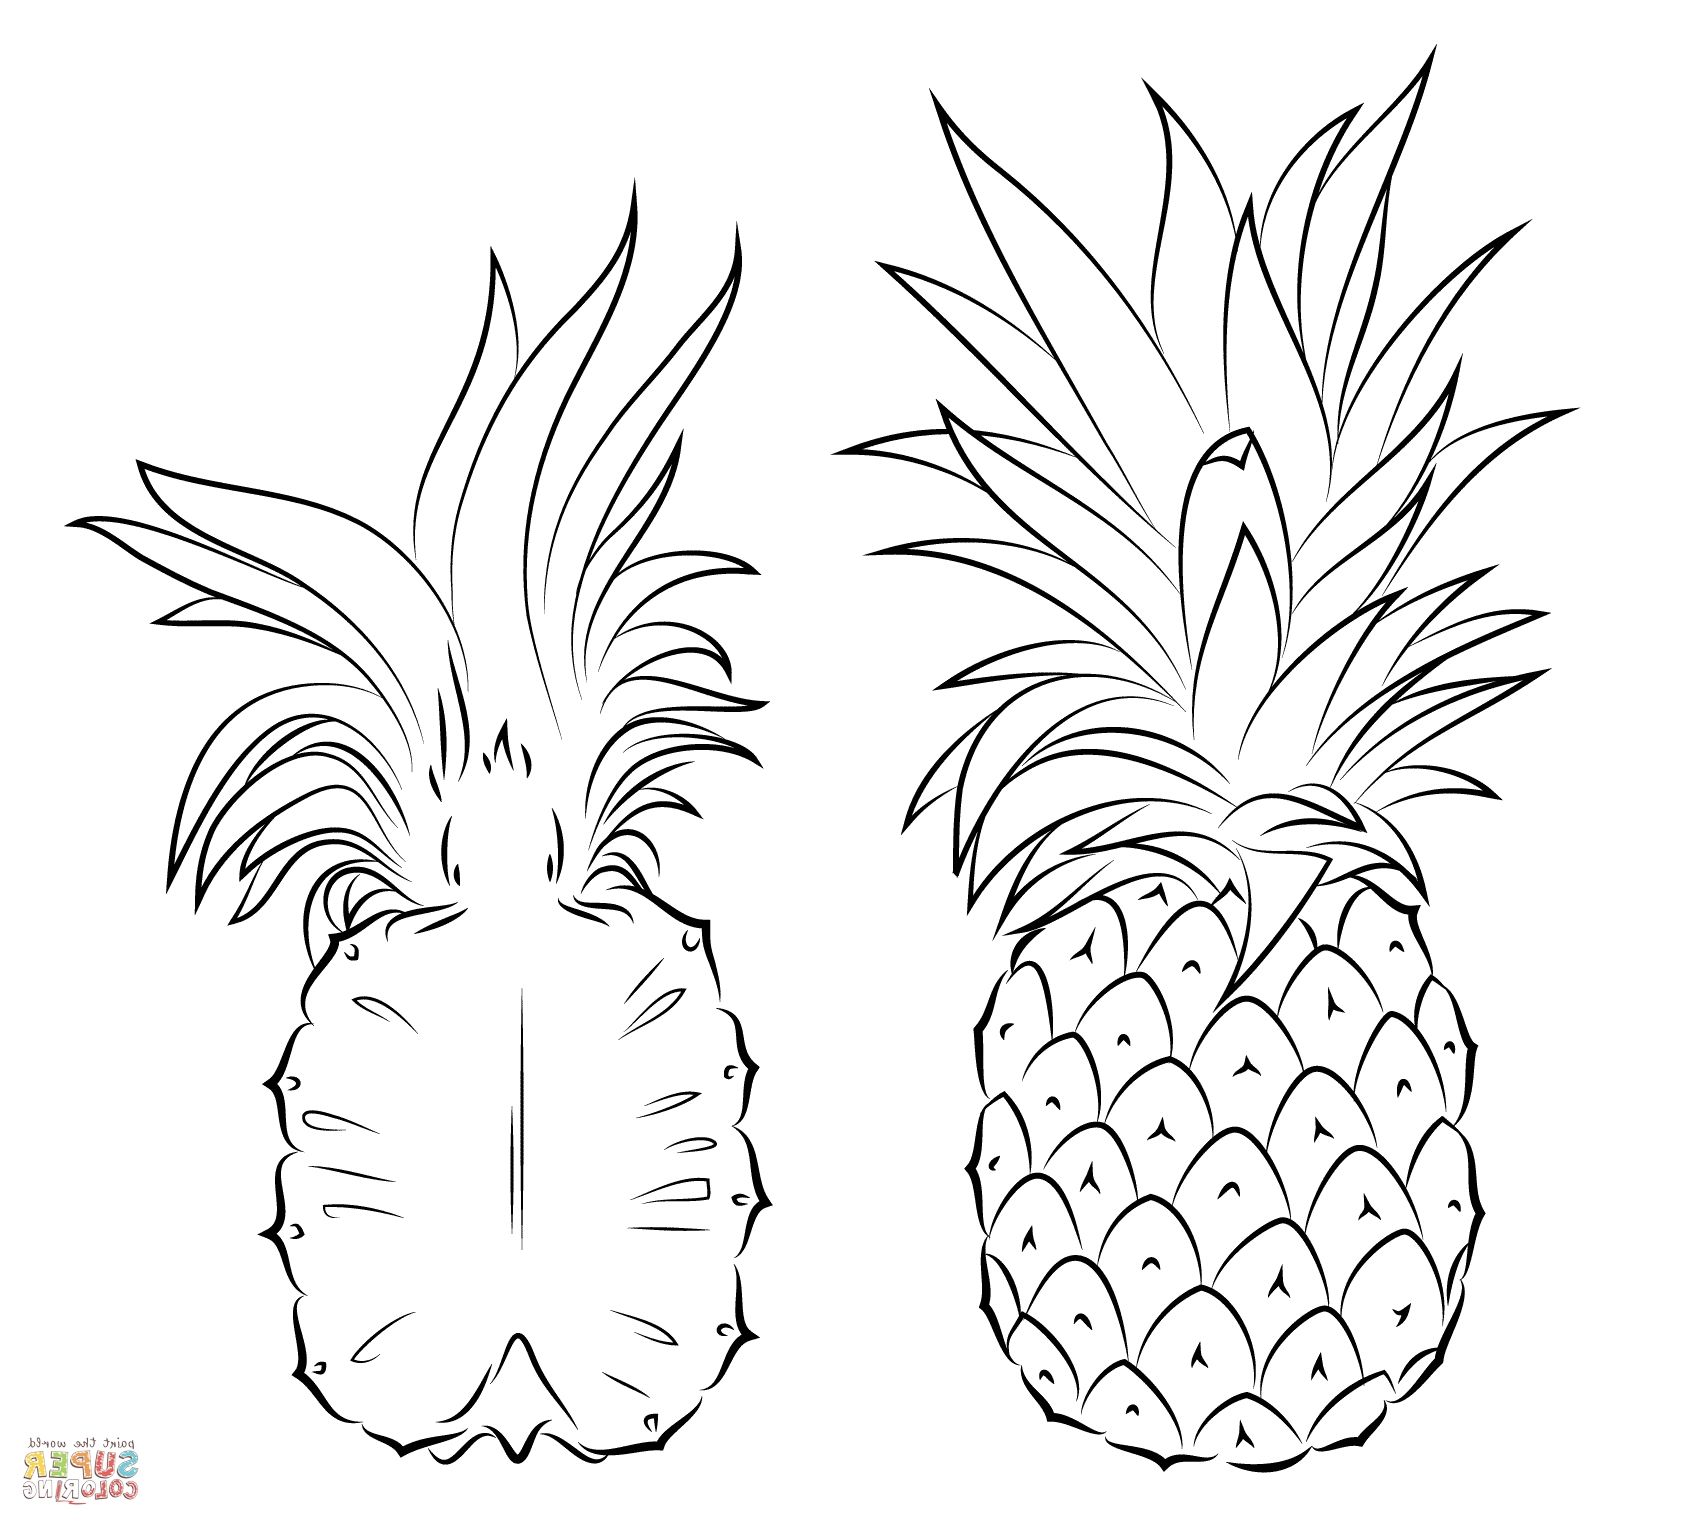 pineapple coloring image pineapple coloring pages image pineapple coloring